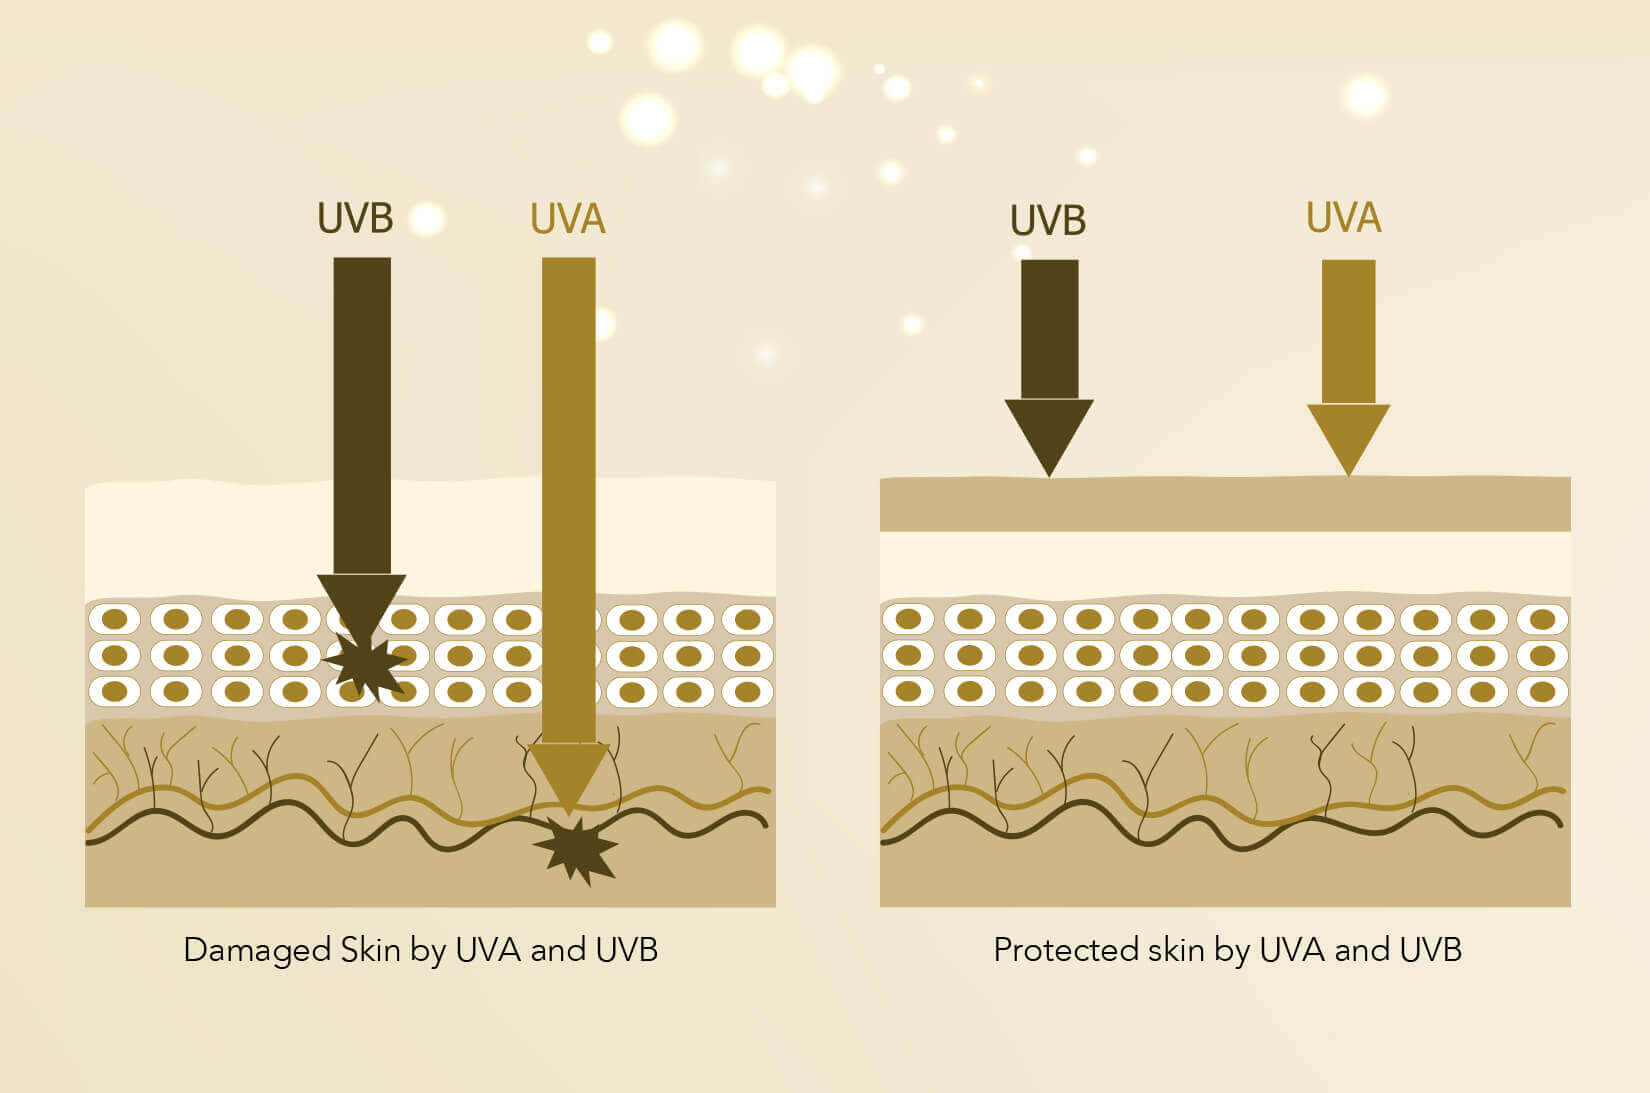 Infographic showing how skin is damaged by UV rays